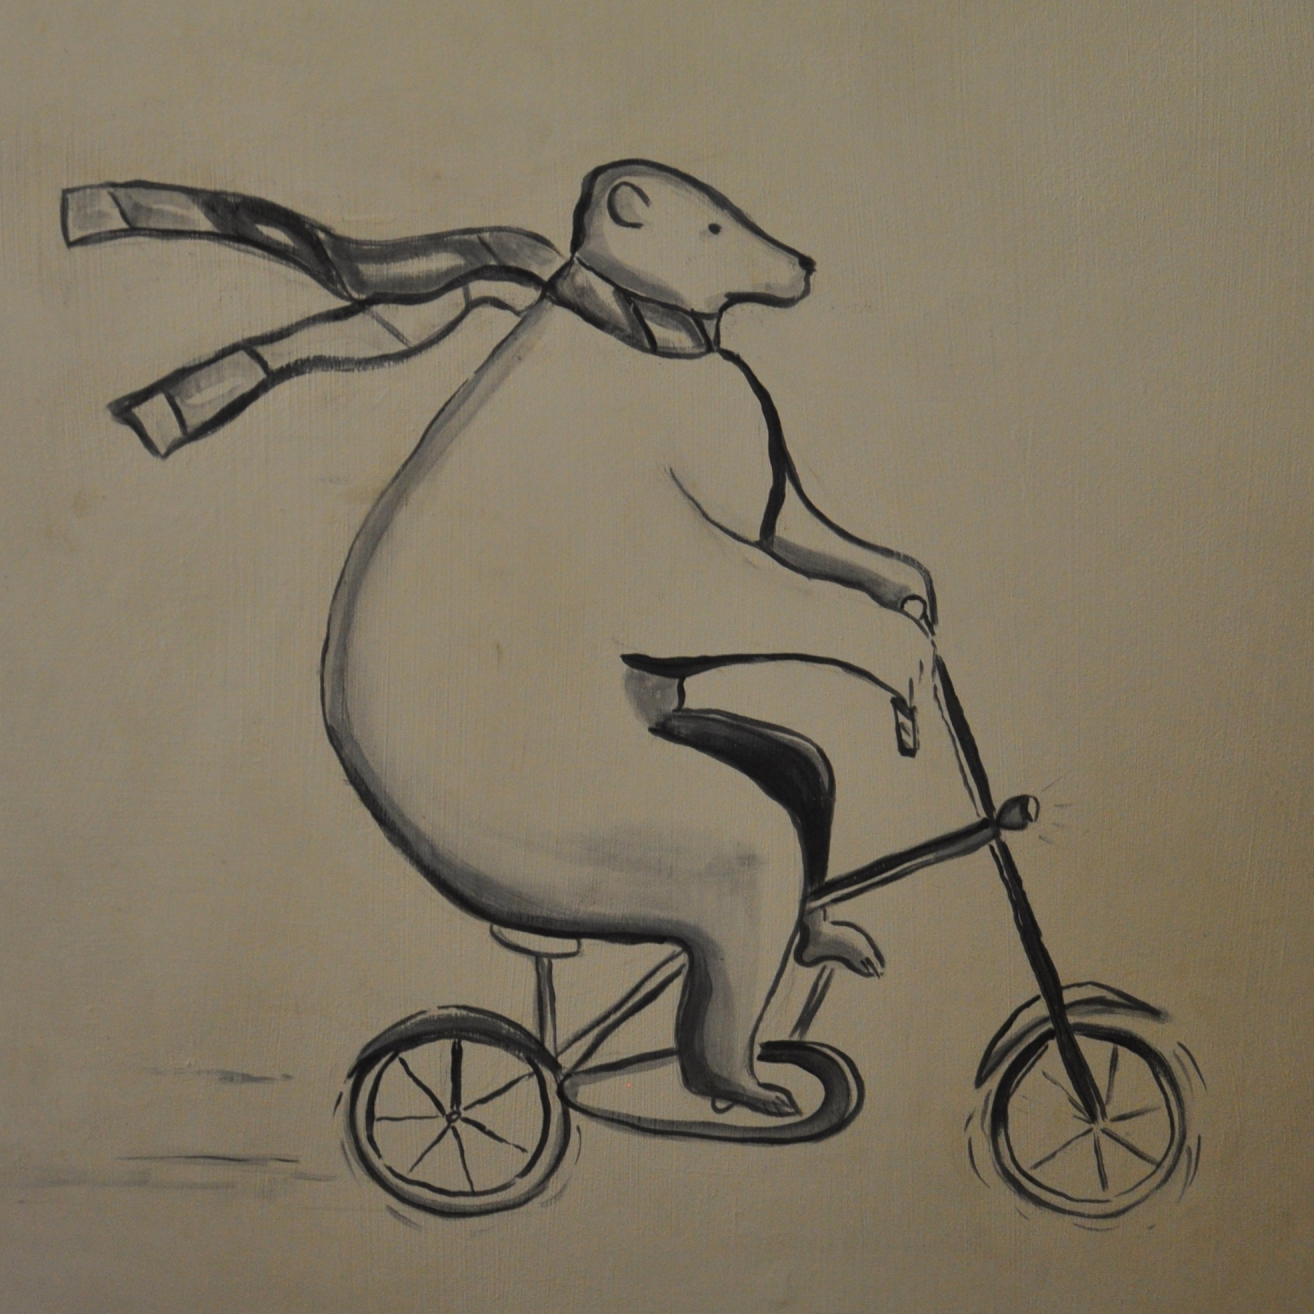 A pencil drawing of a large bear with scarf streaming behind it, as it peddles an under-sized bicycle.